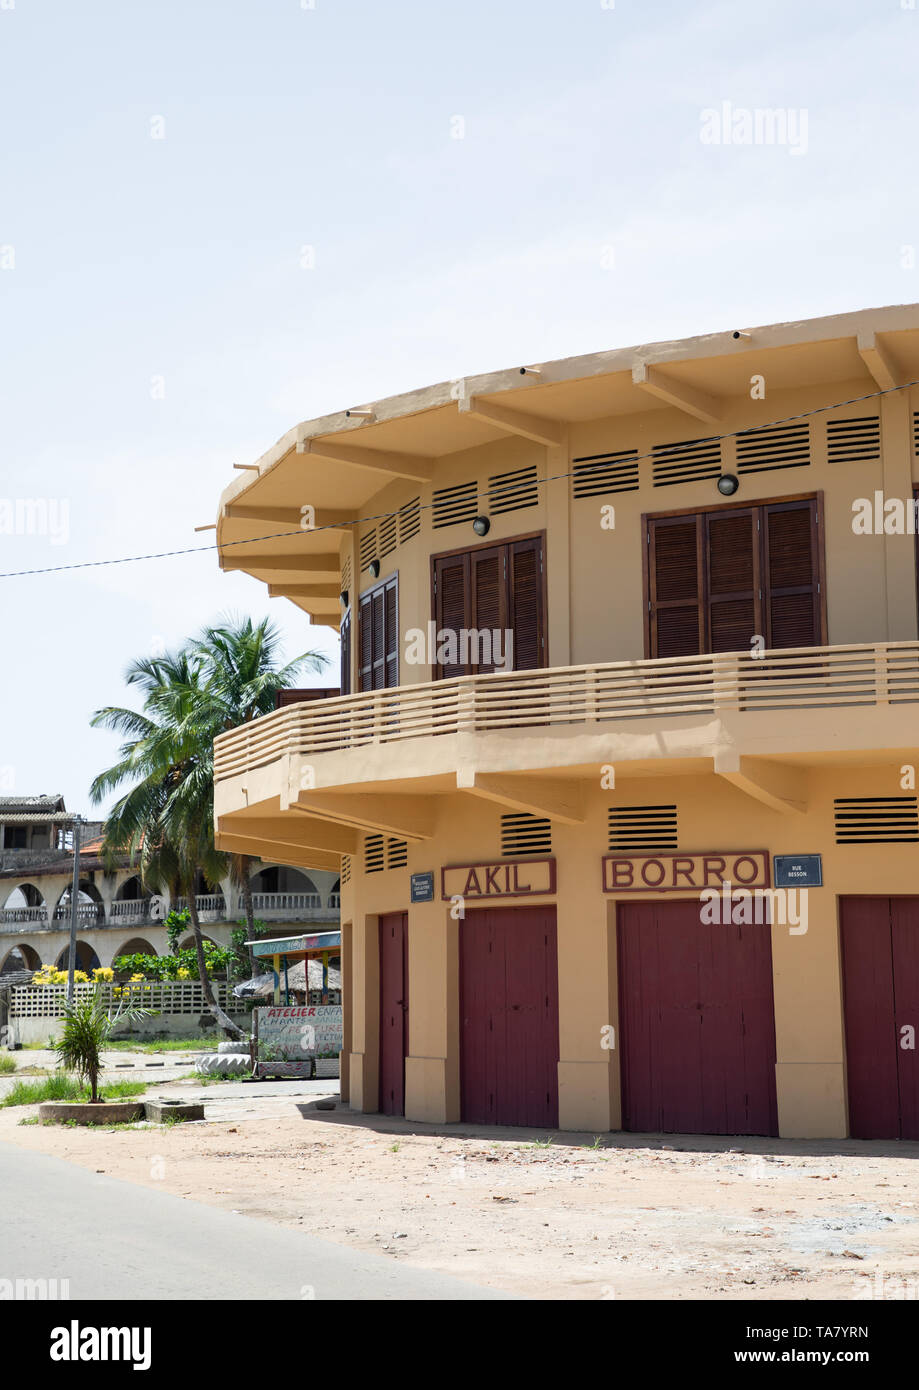 Maison Akil Borro old french colonial building, Sud-Comoé, Grand-Bassam, Ivory Coast - Stock Image